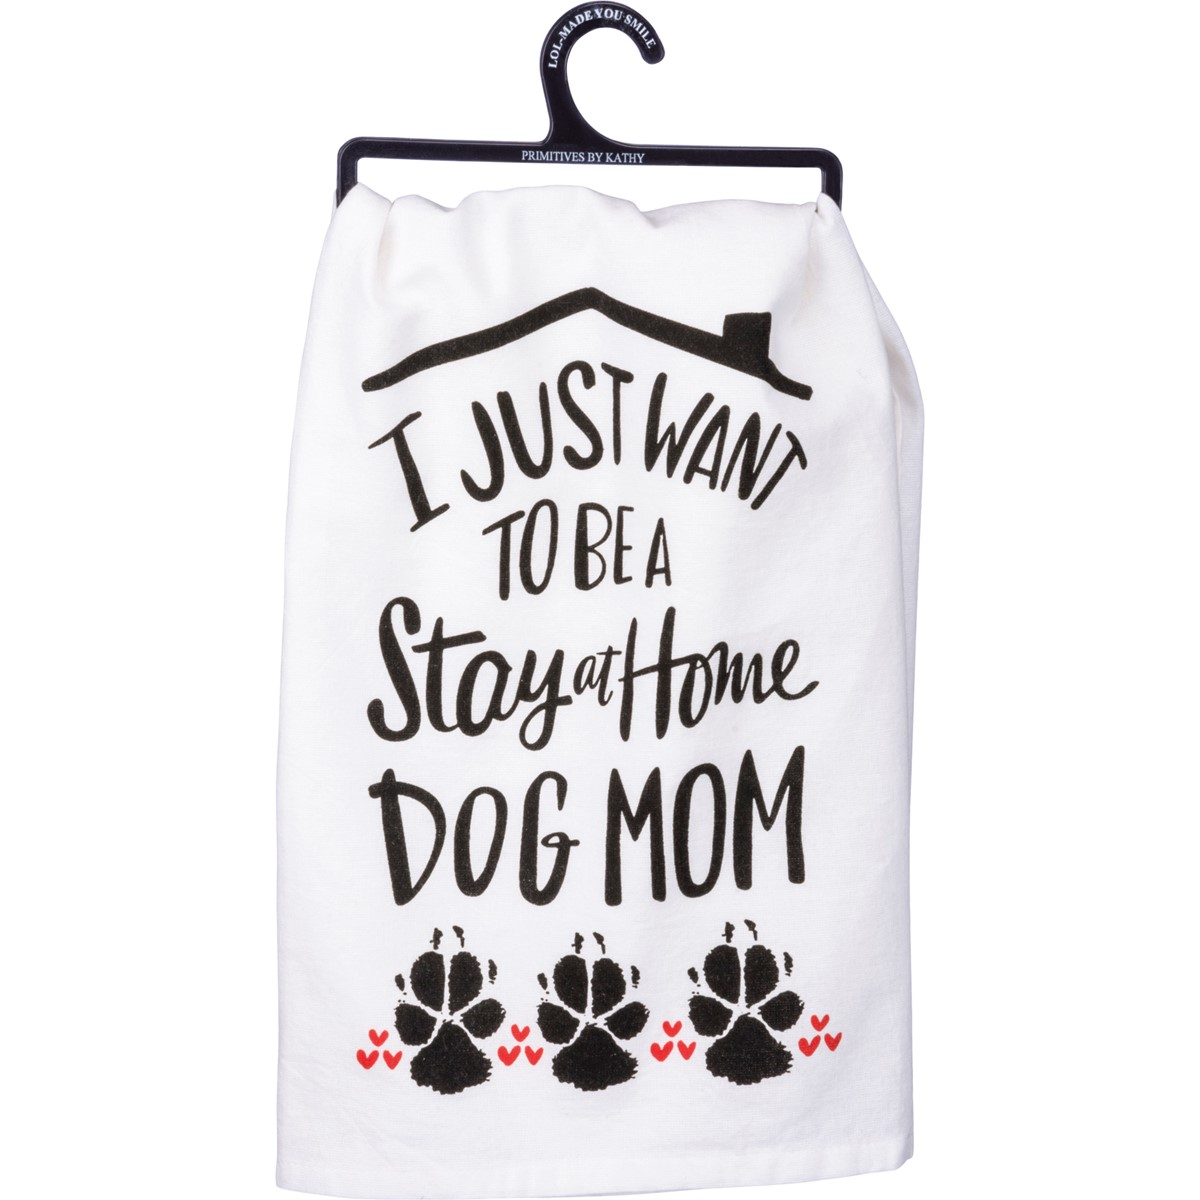 "Dish Towel - Stay At Home Dog Mom - 28"" x 28"" - Cotton"